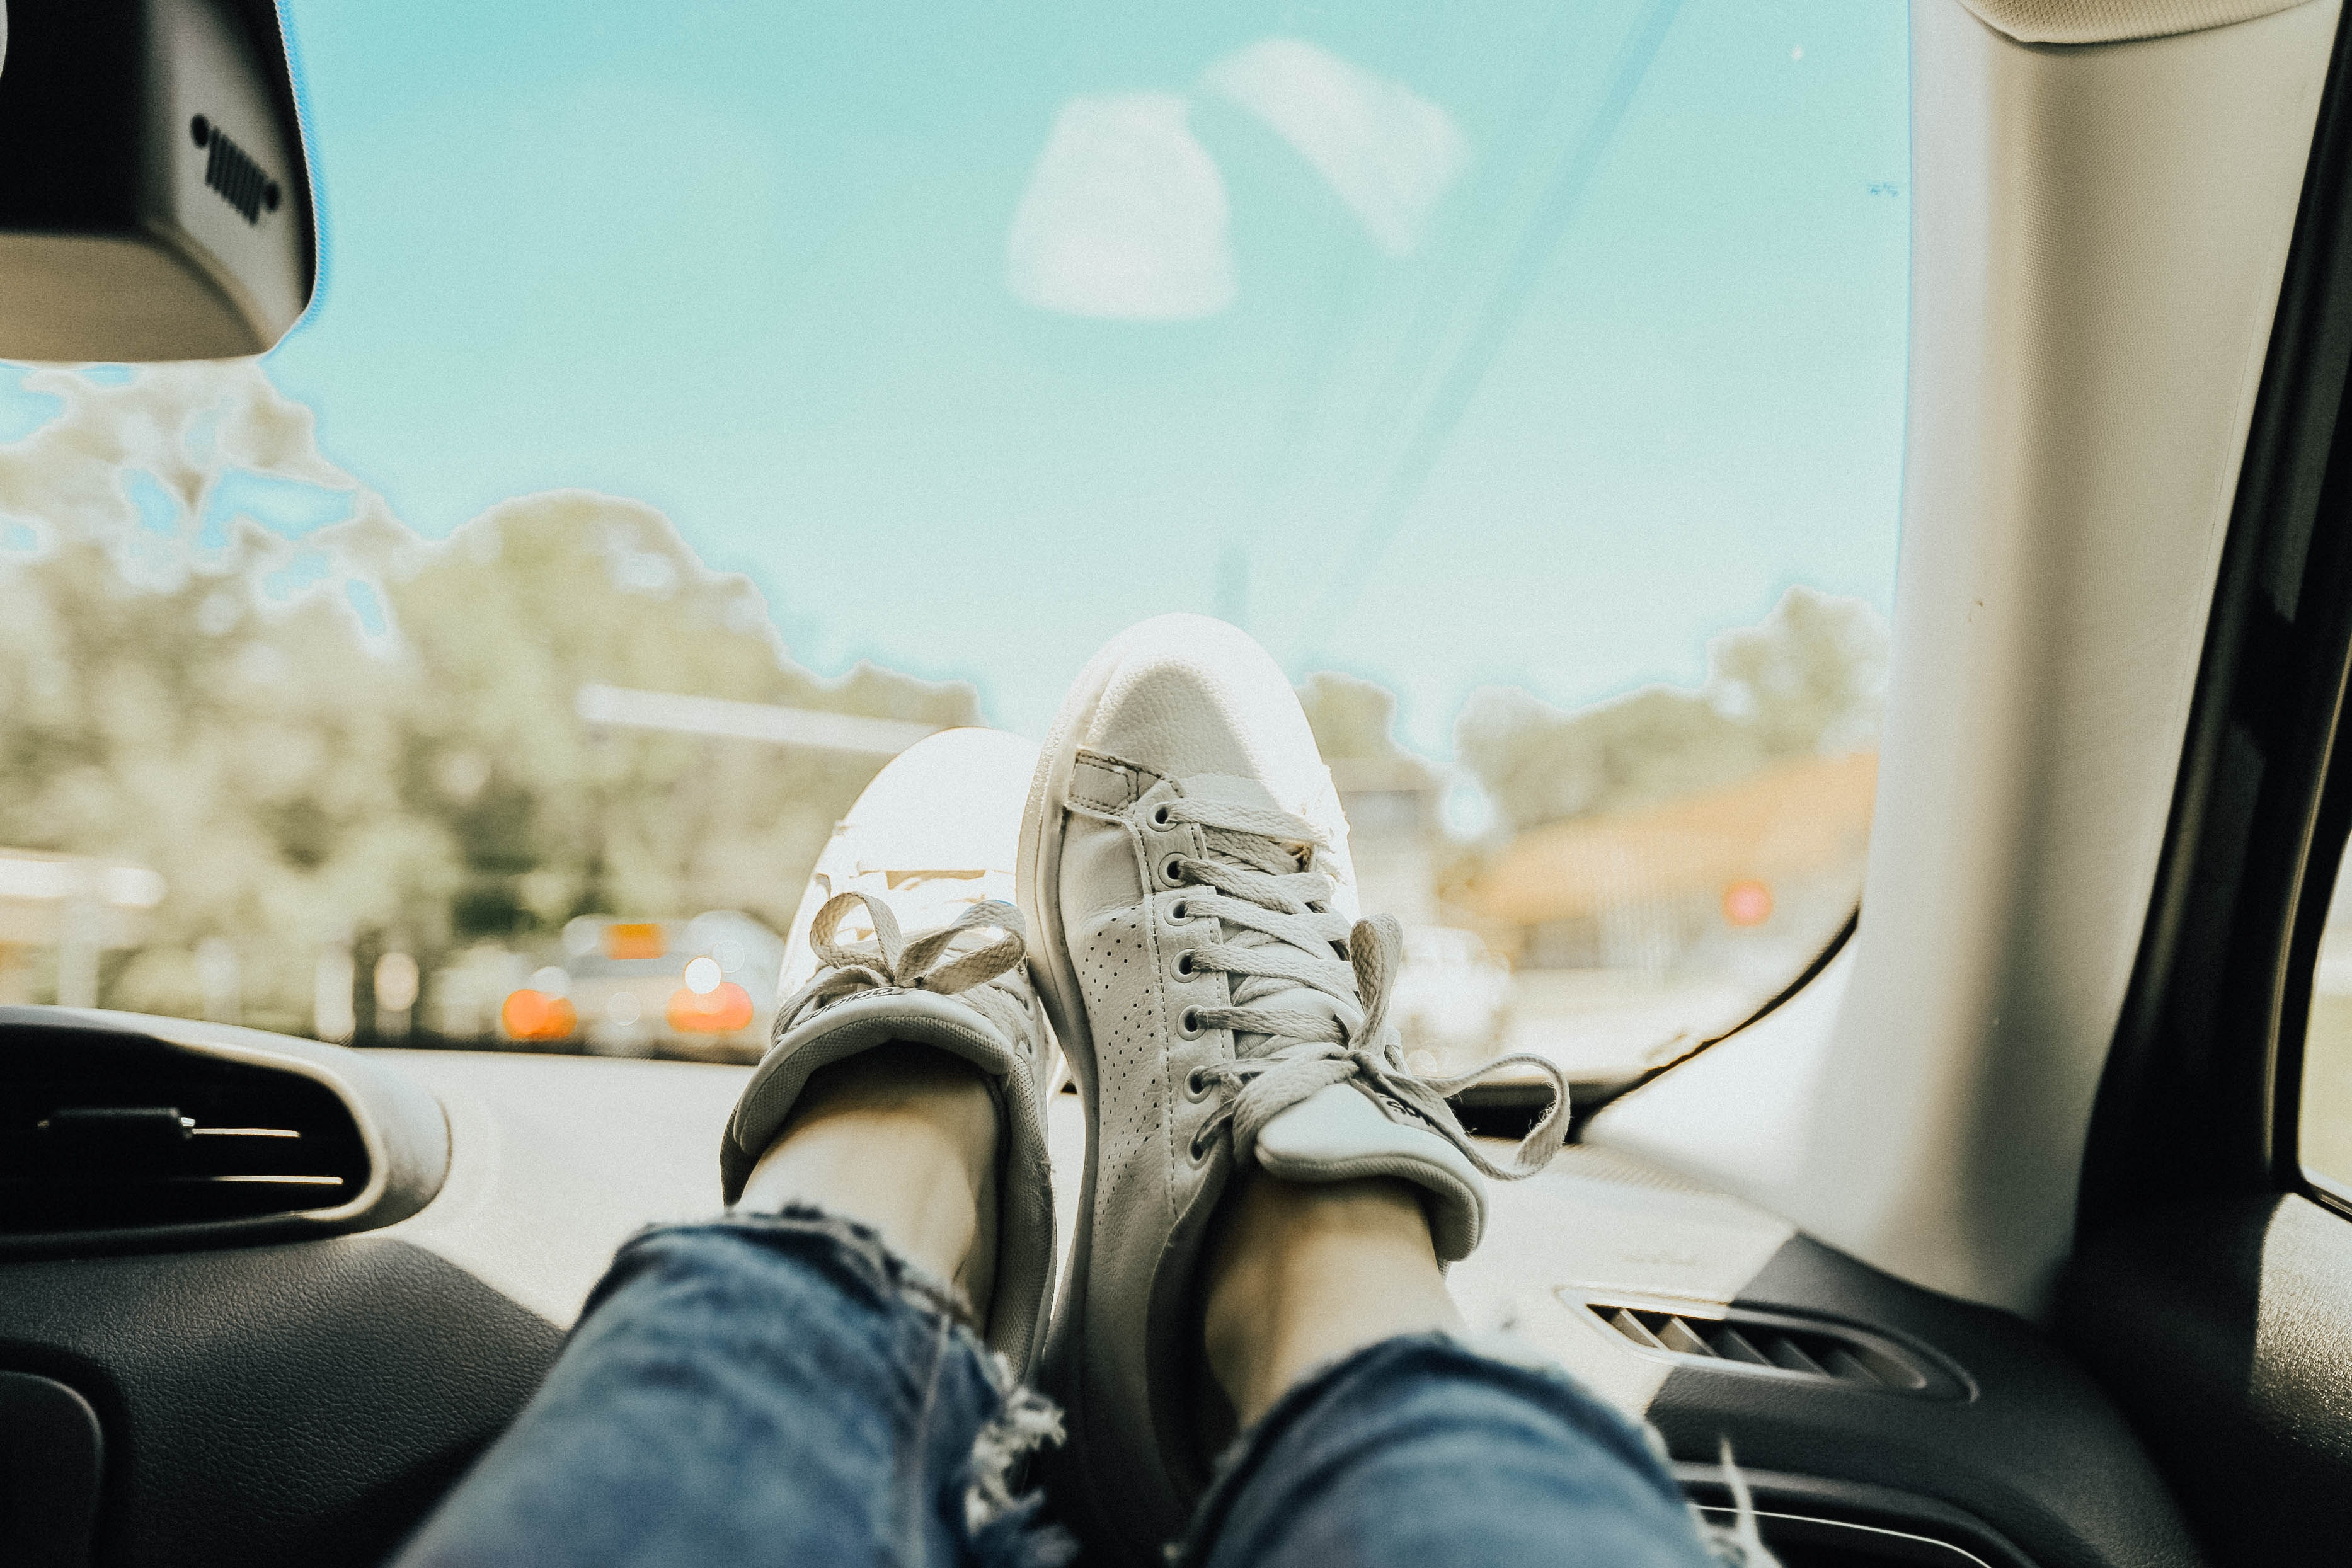 Picture of person with their feet up on a car dashboard, relating to one of the world's untranslatable words: Fahrvergnügen